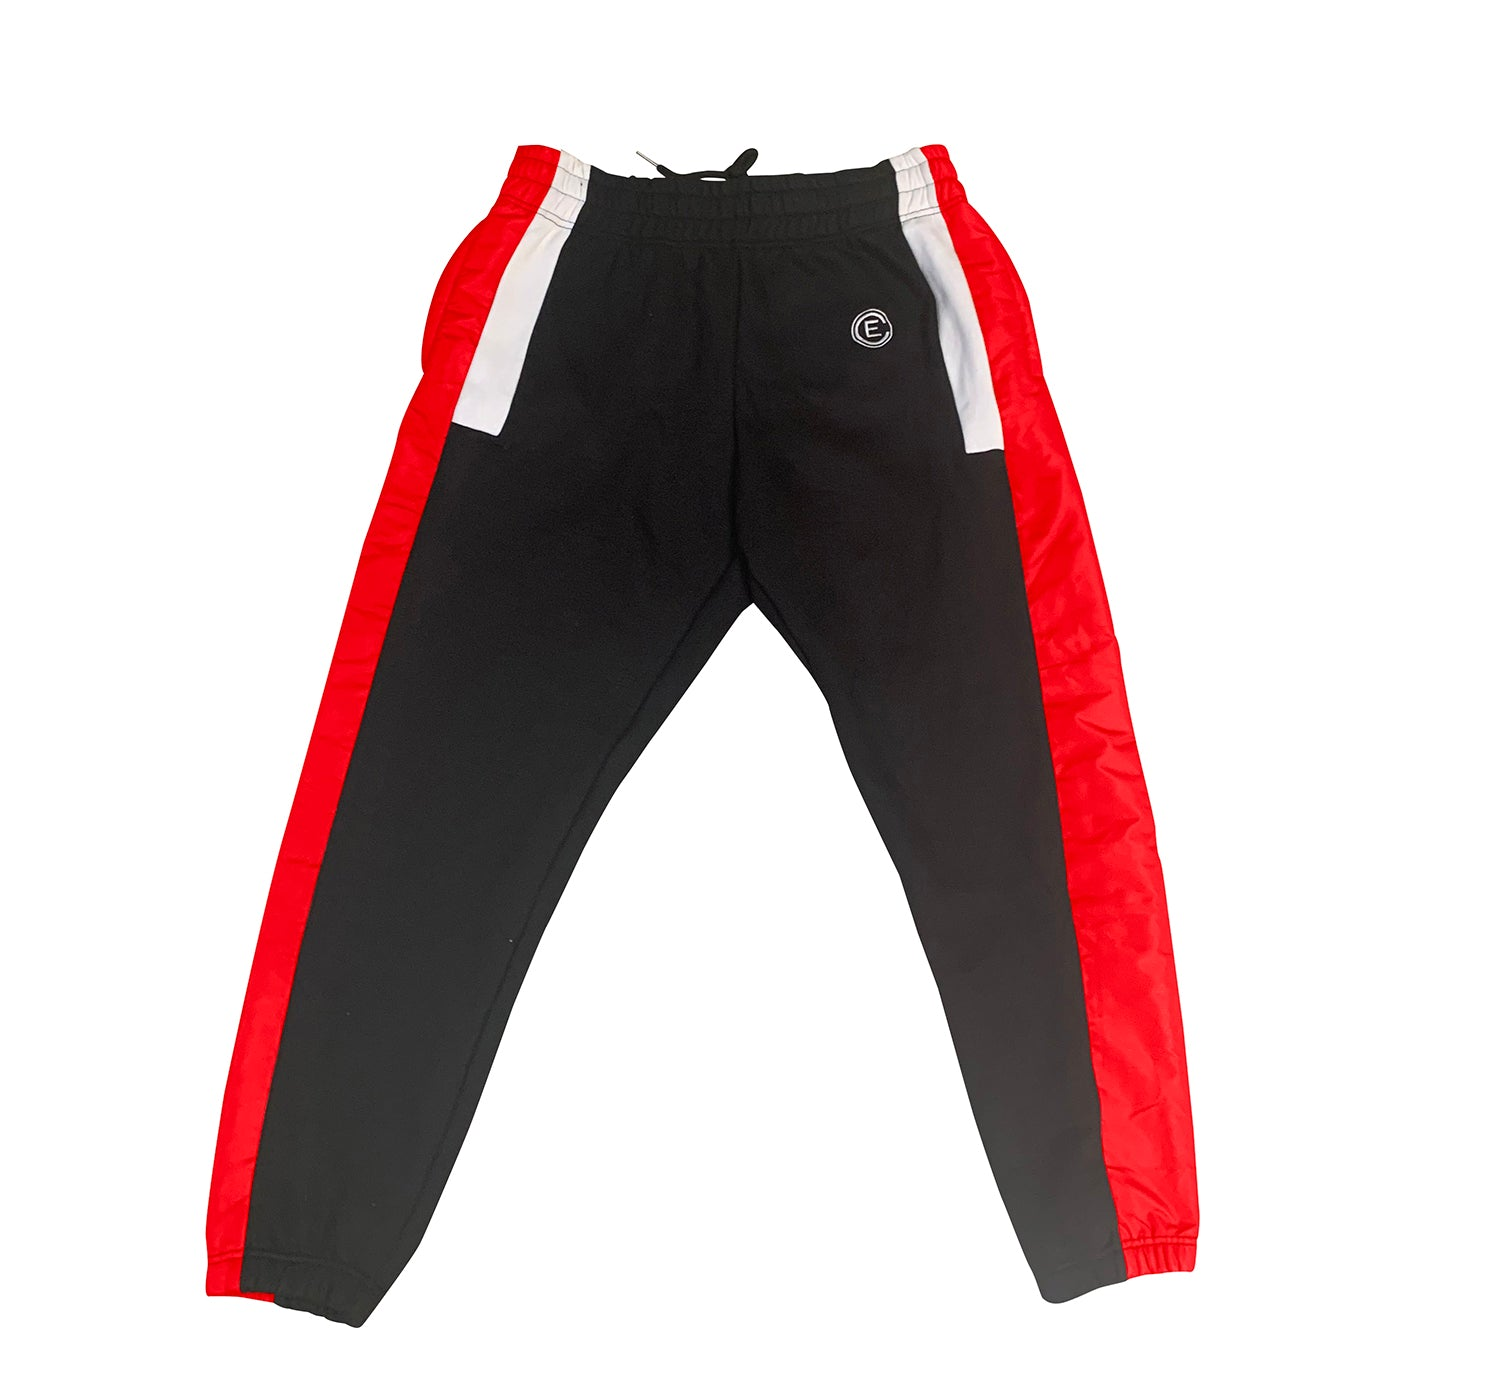 Jordan 11 Bred Cut Sew Pants